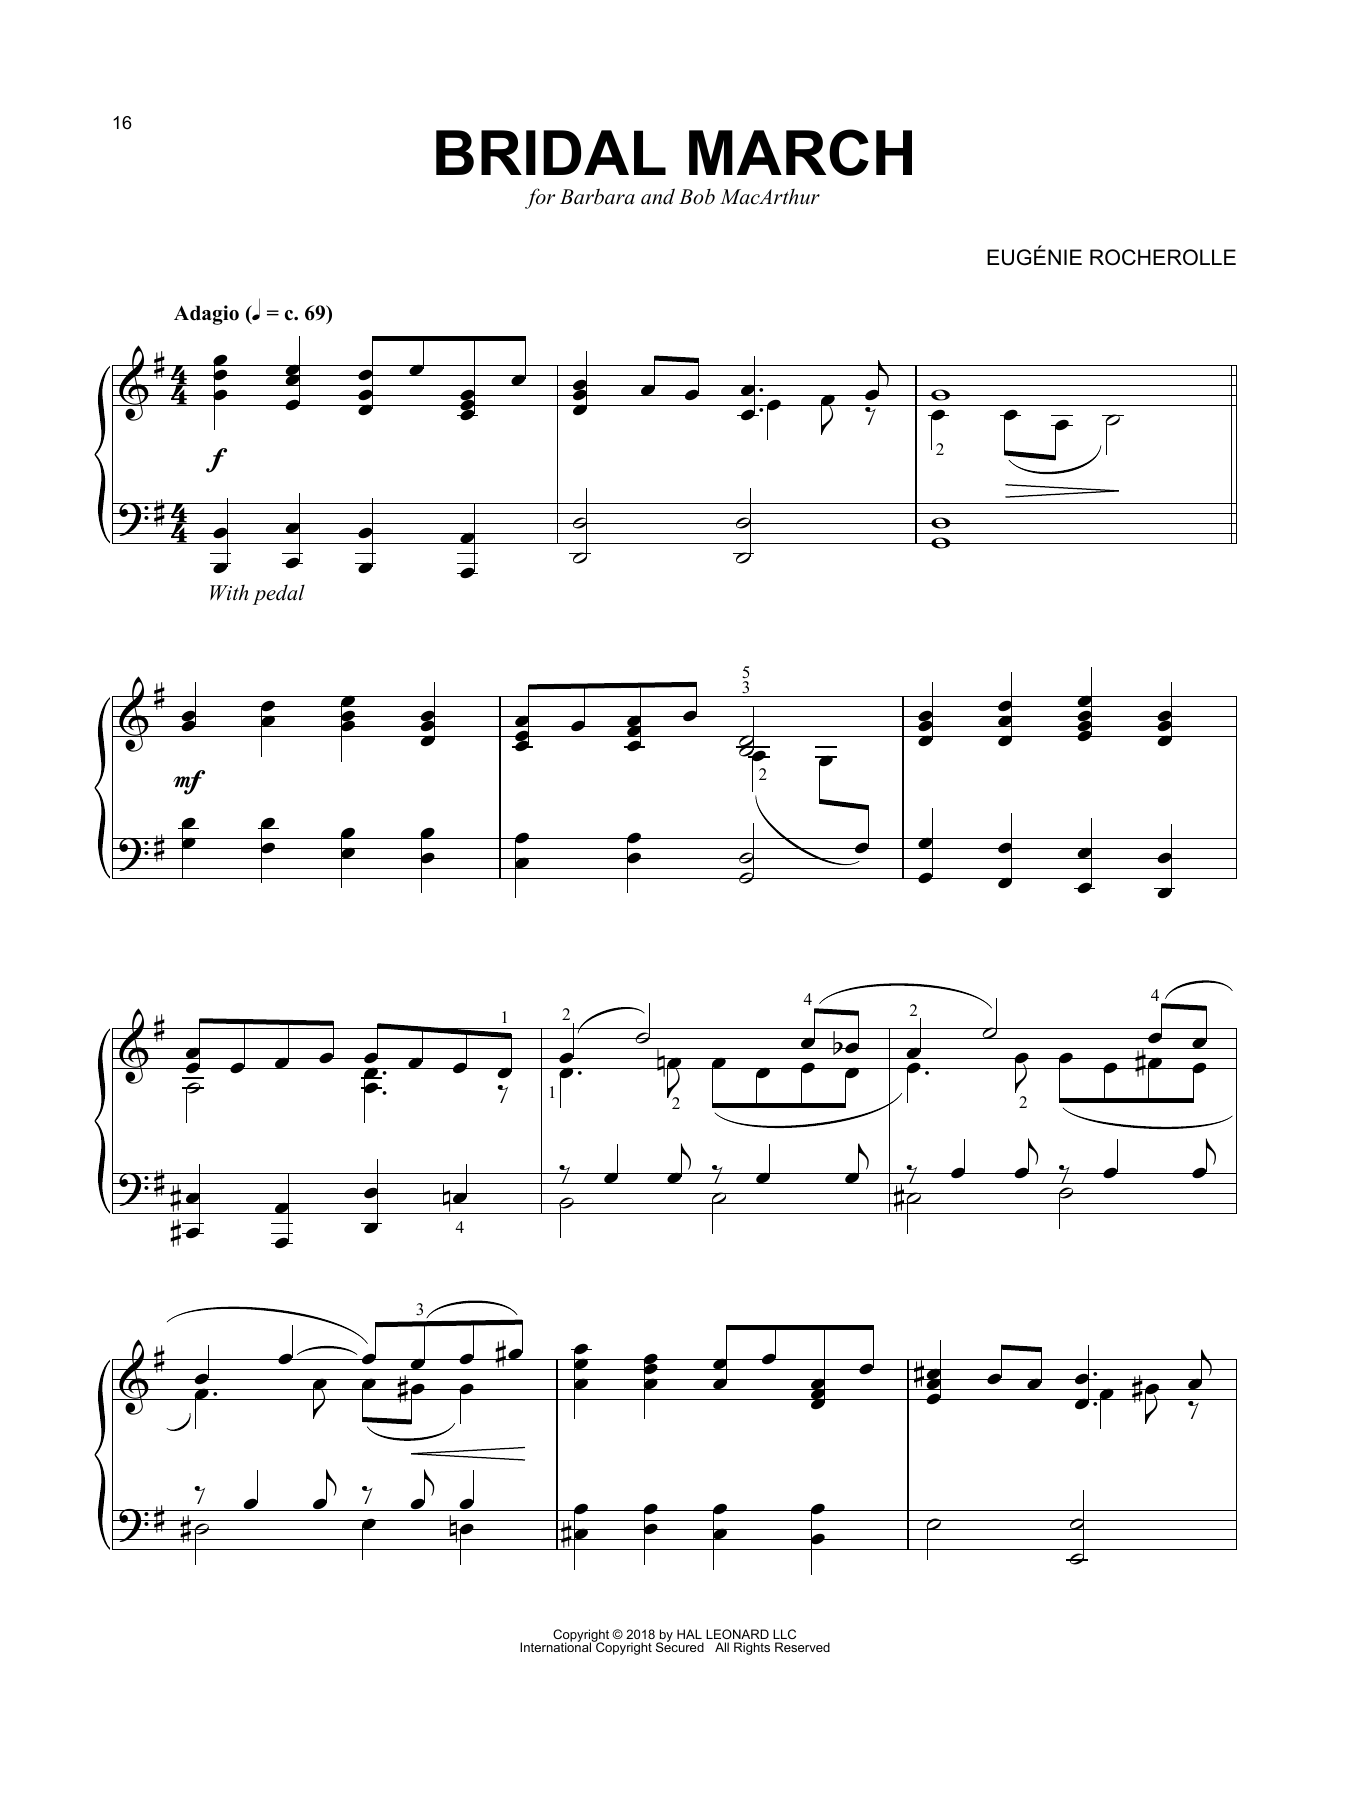 Eugenie Rocherolle Bridal March sheet music notes and chords